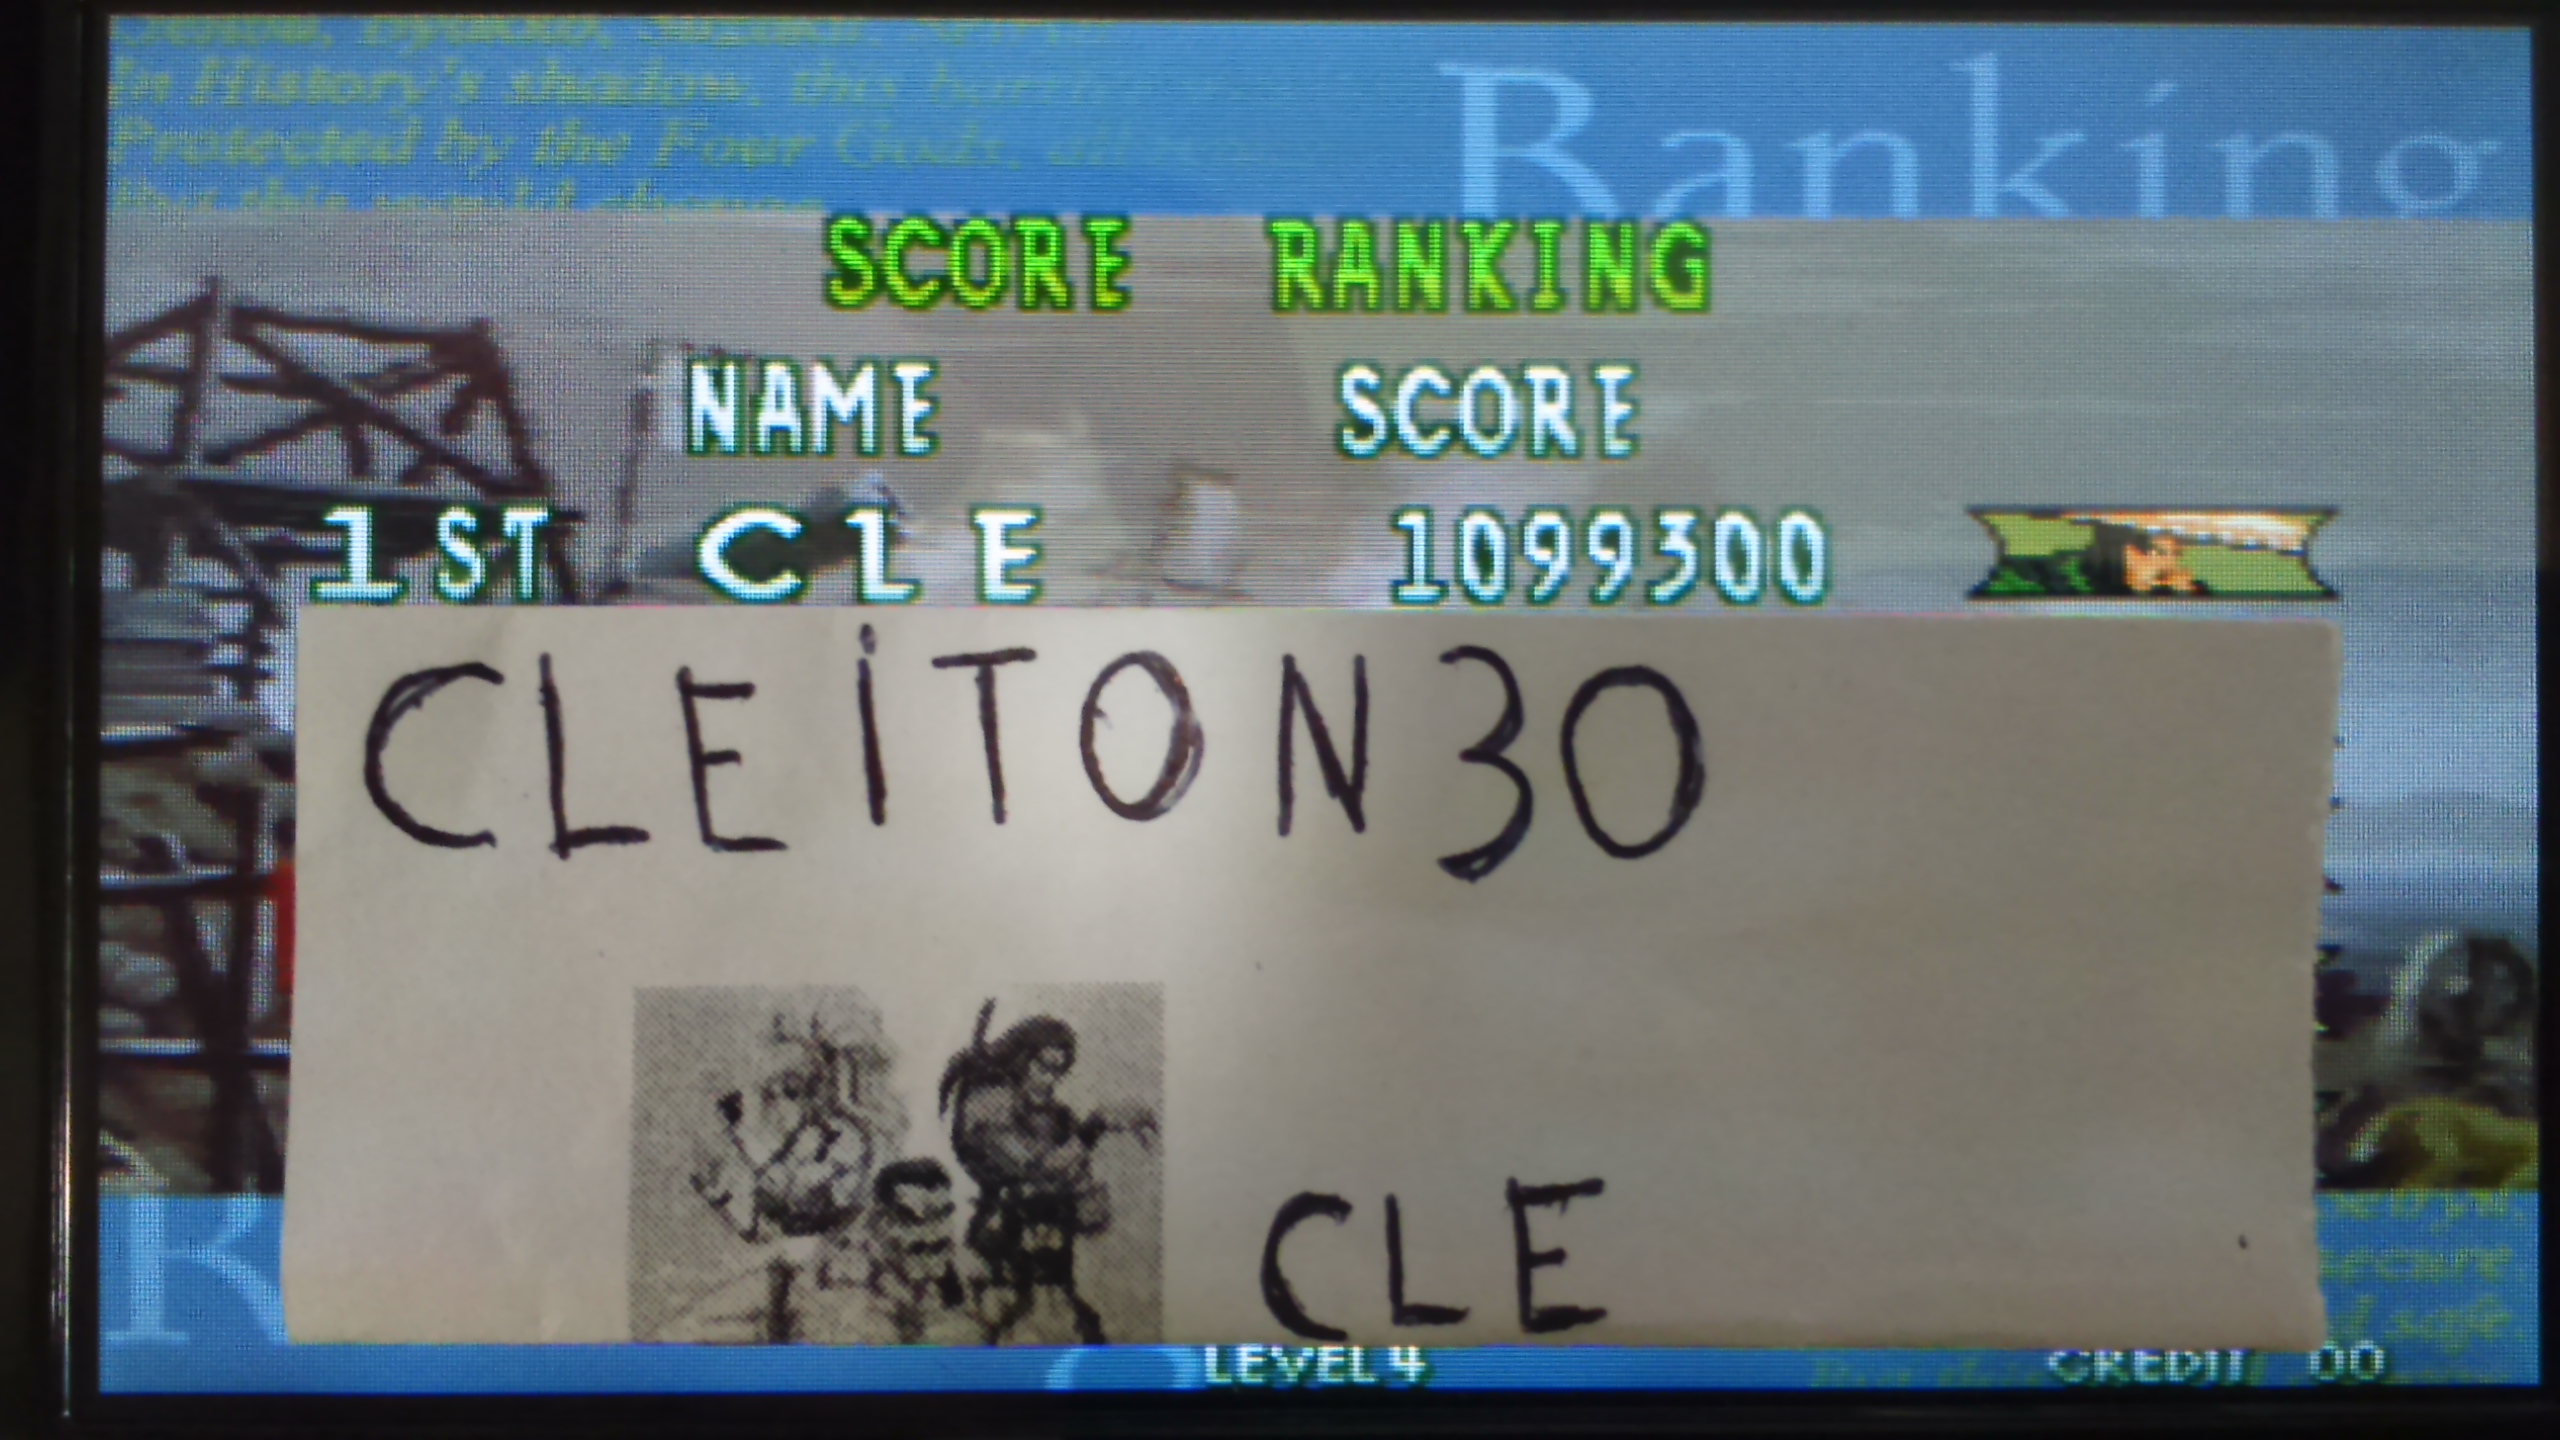 Cleiton30: Last Blade 2 (Neo Geo Emulated) 1,099,300 points on 2016-05-20 15:01:59